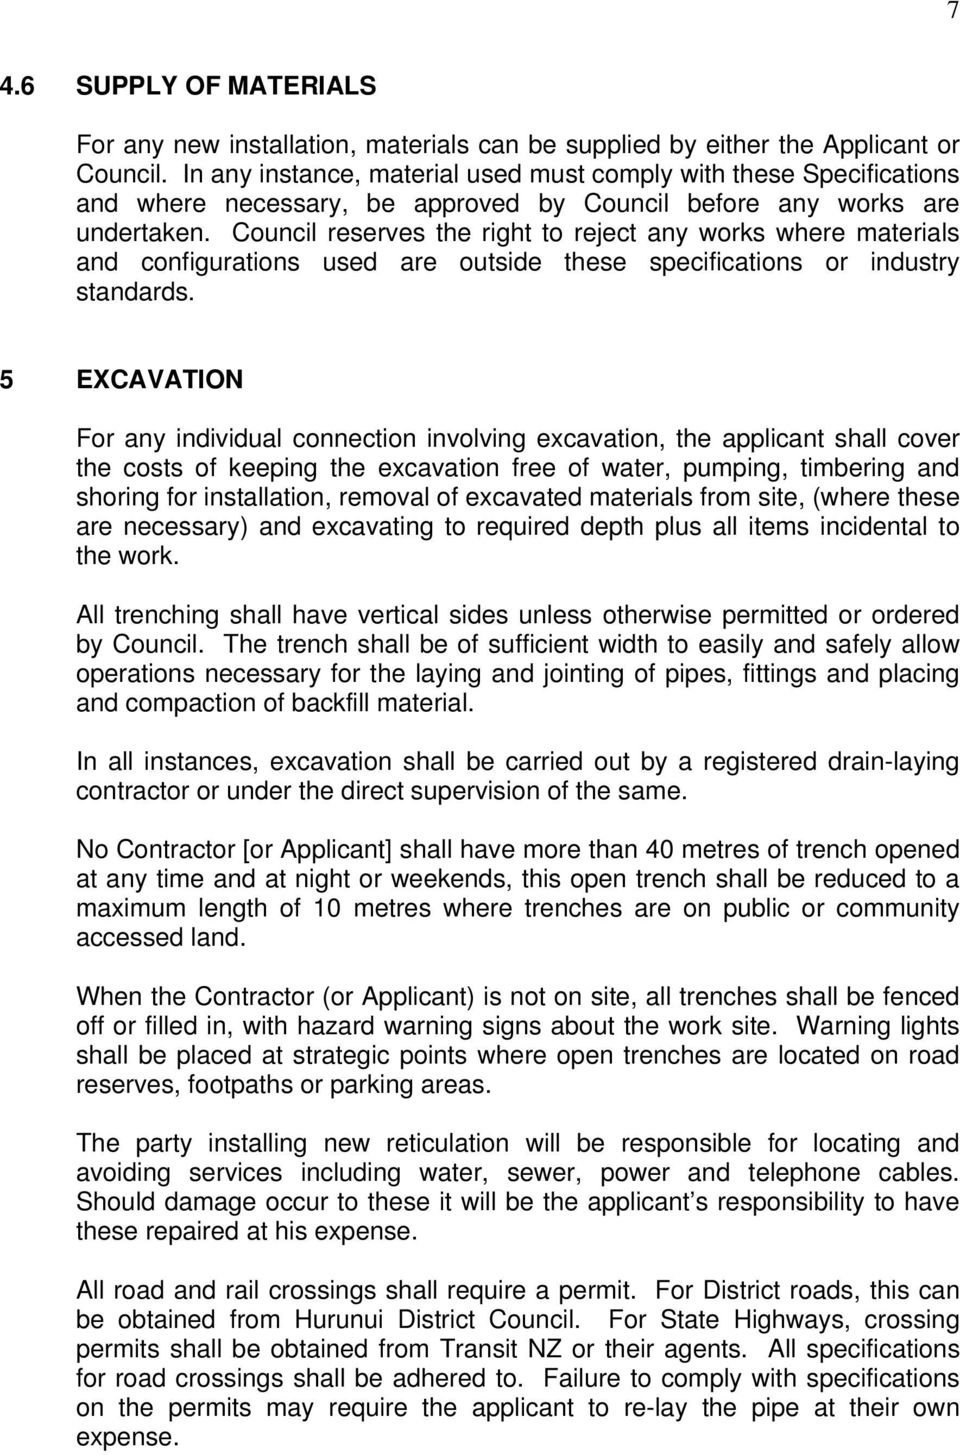 Council reserves the right to reject any works where materials and configurations used are outside these specifications or industry standards.